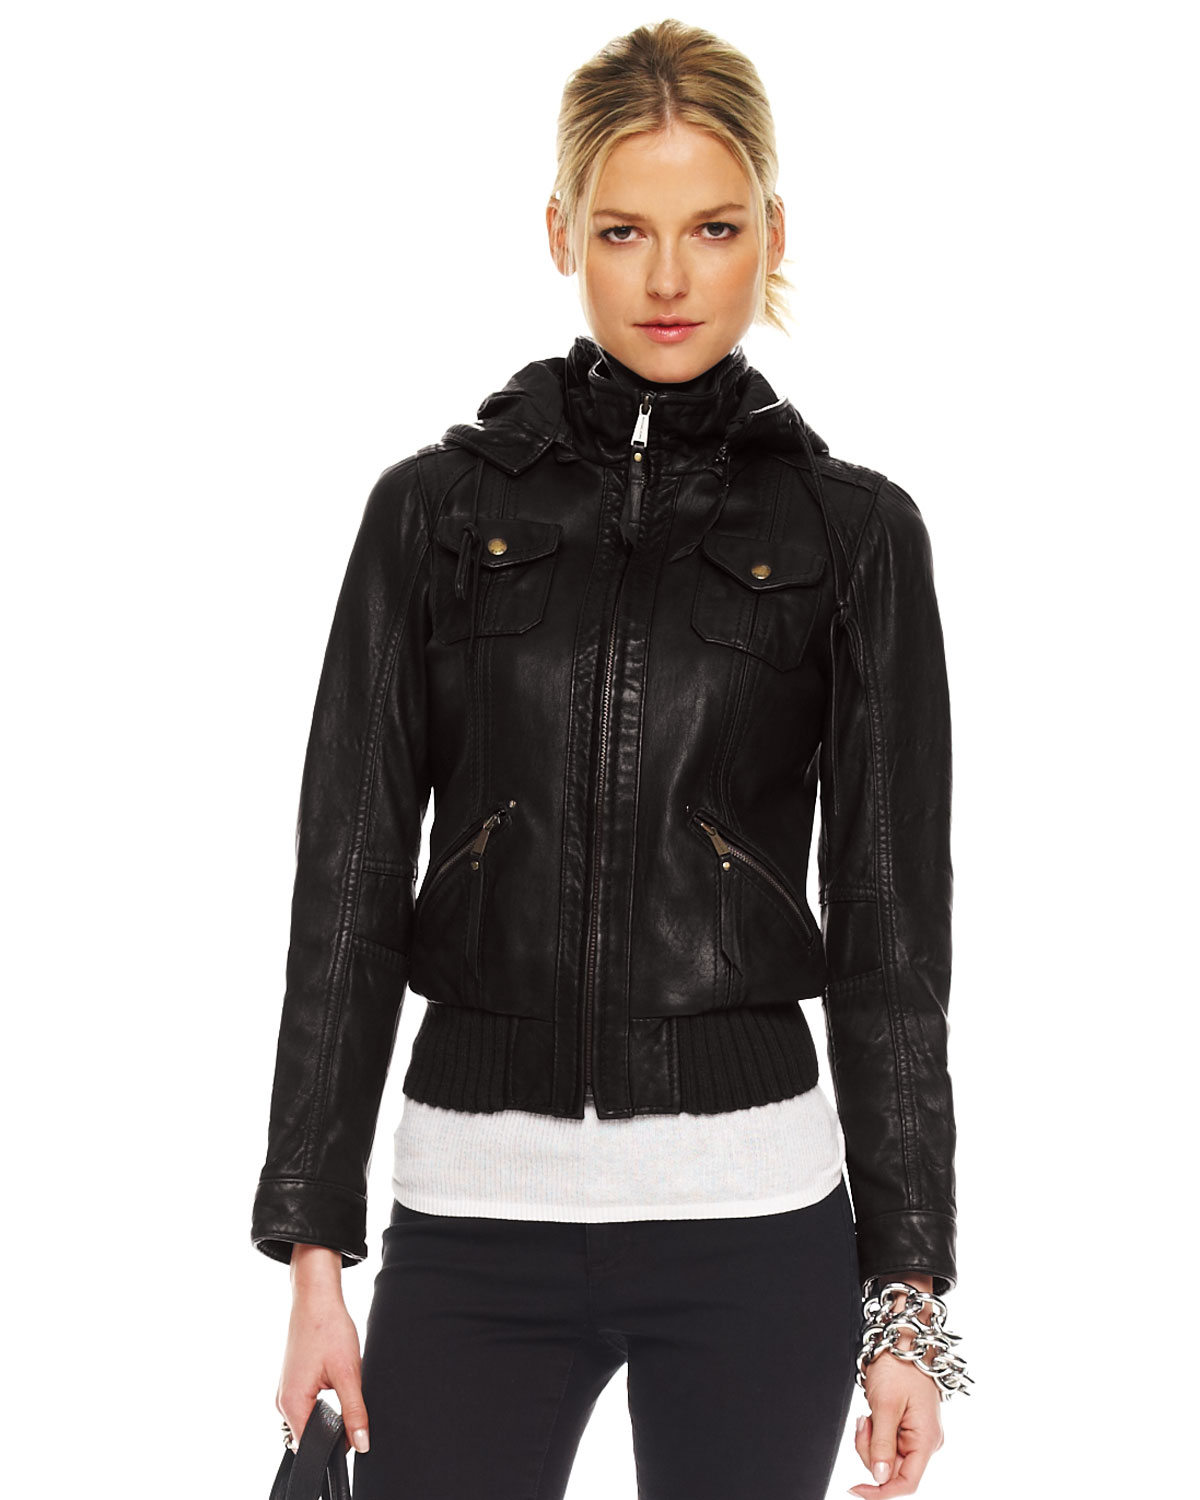 michael kors hooded leather jacket in black lyst